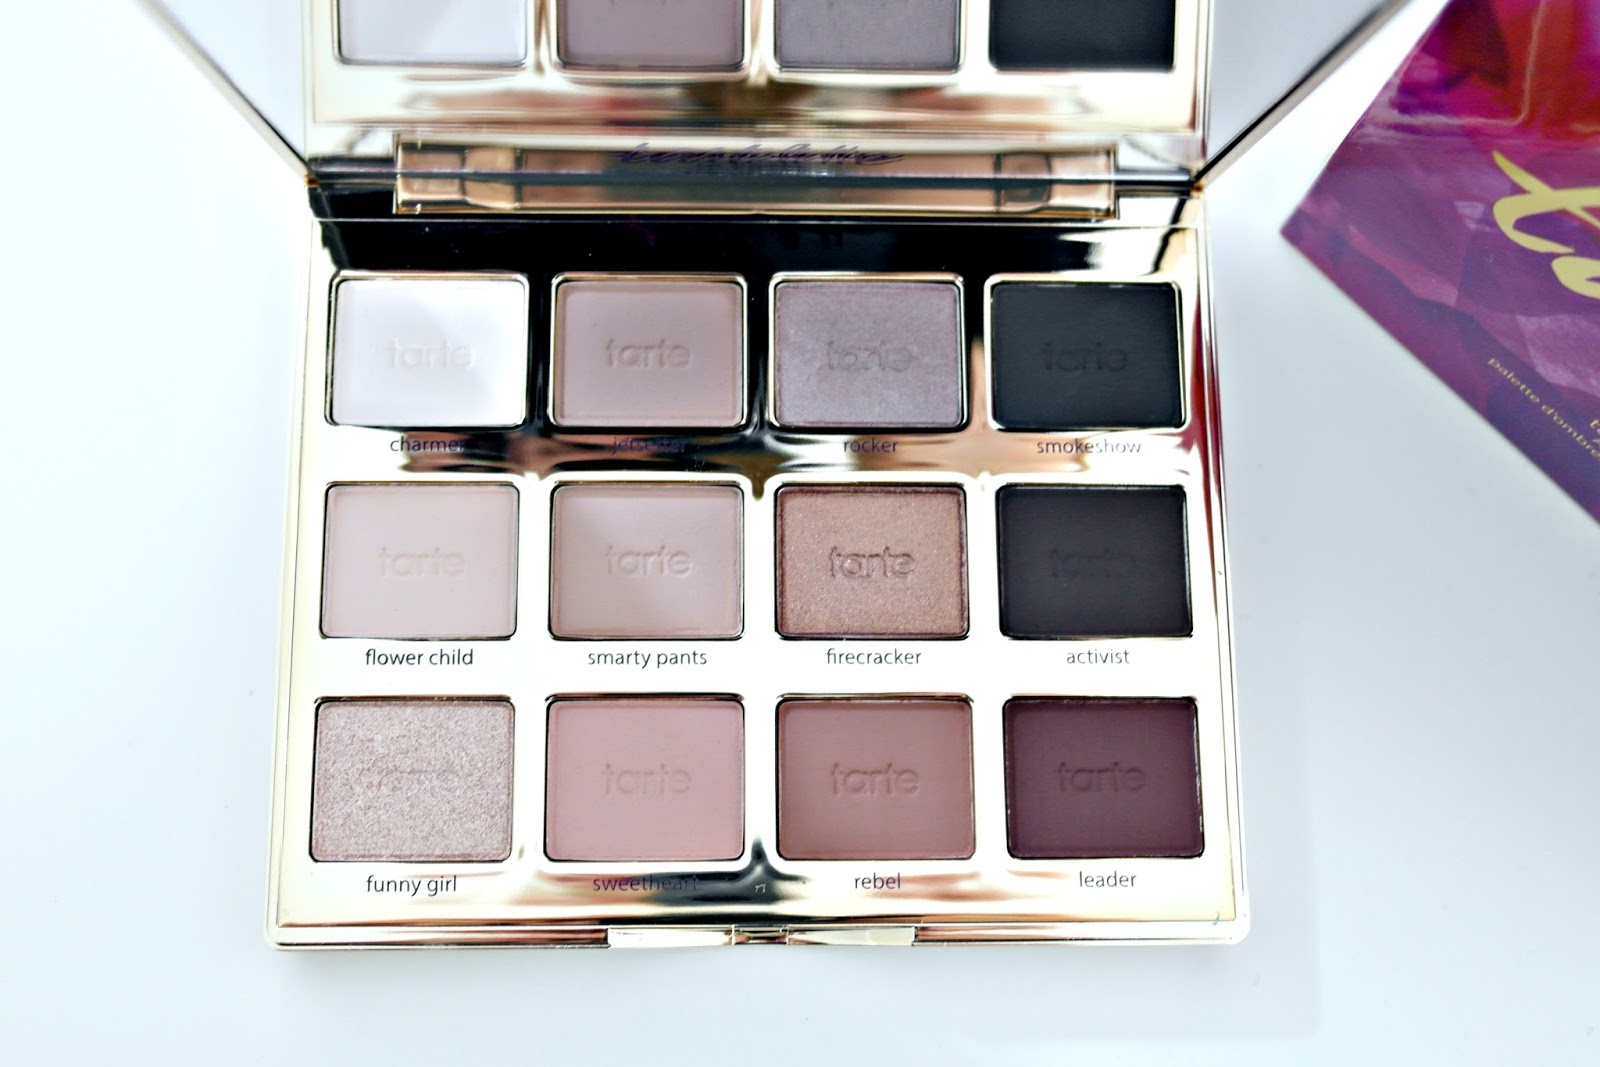 Tarte Tartelette 2 In Bloom Amazonian Clay Palette Review